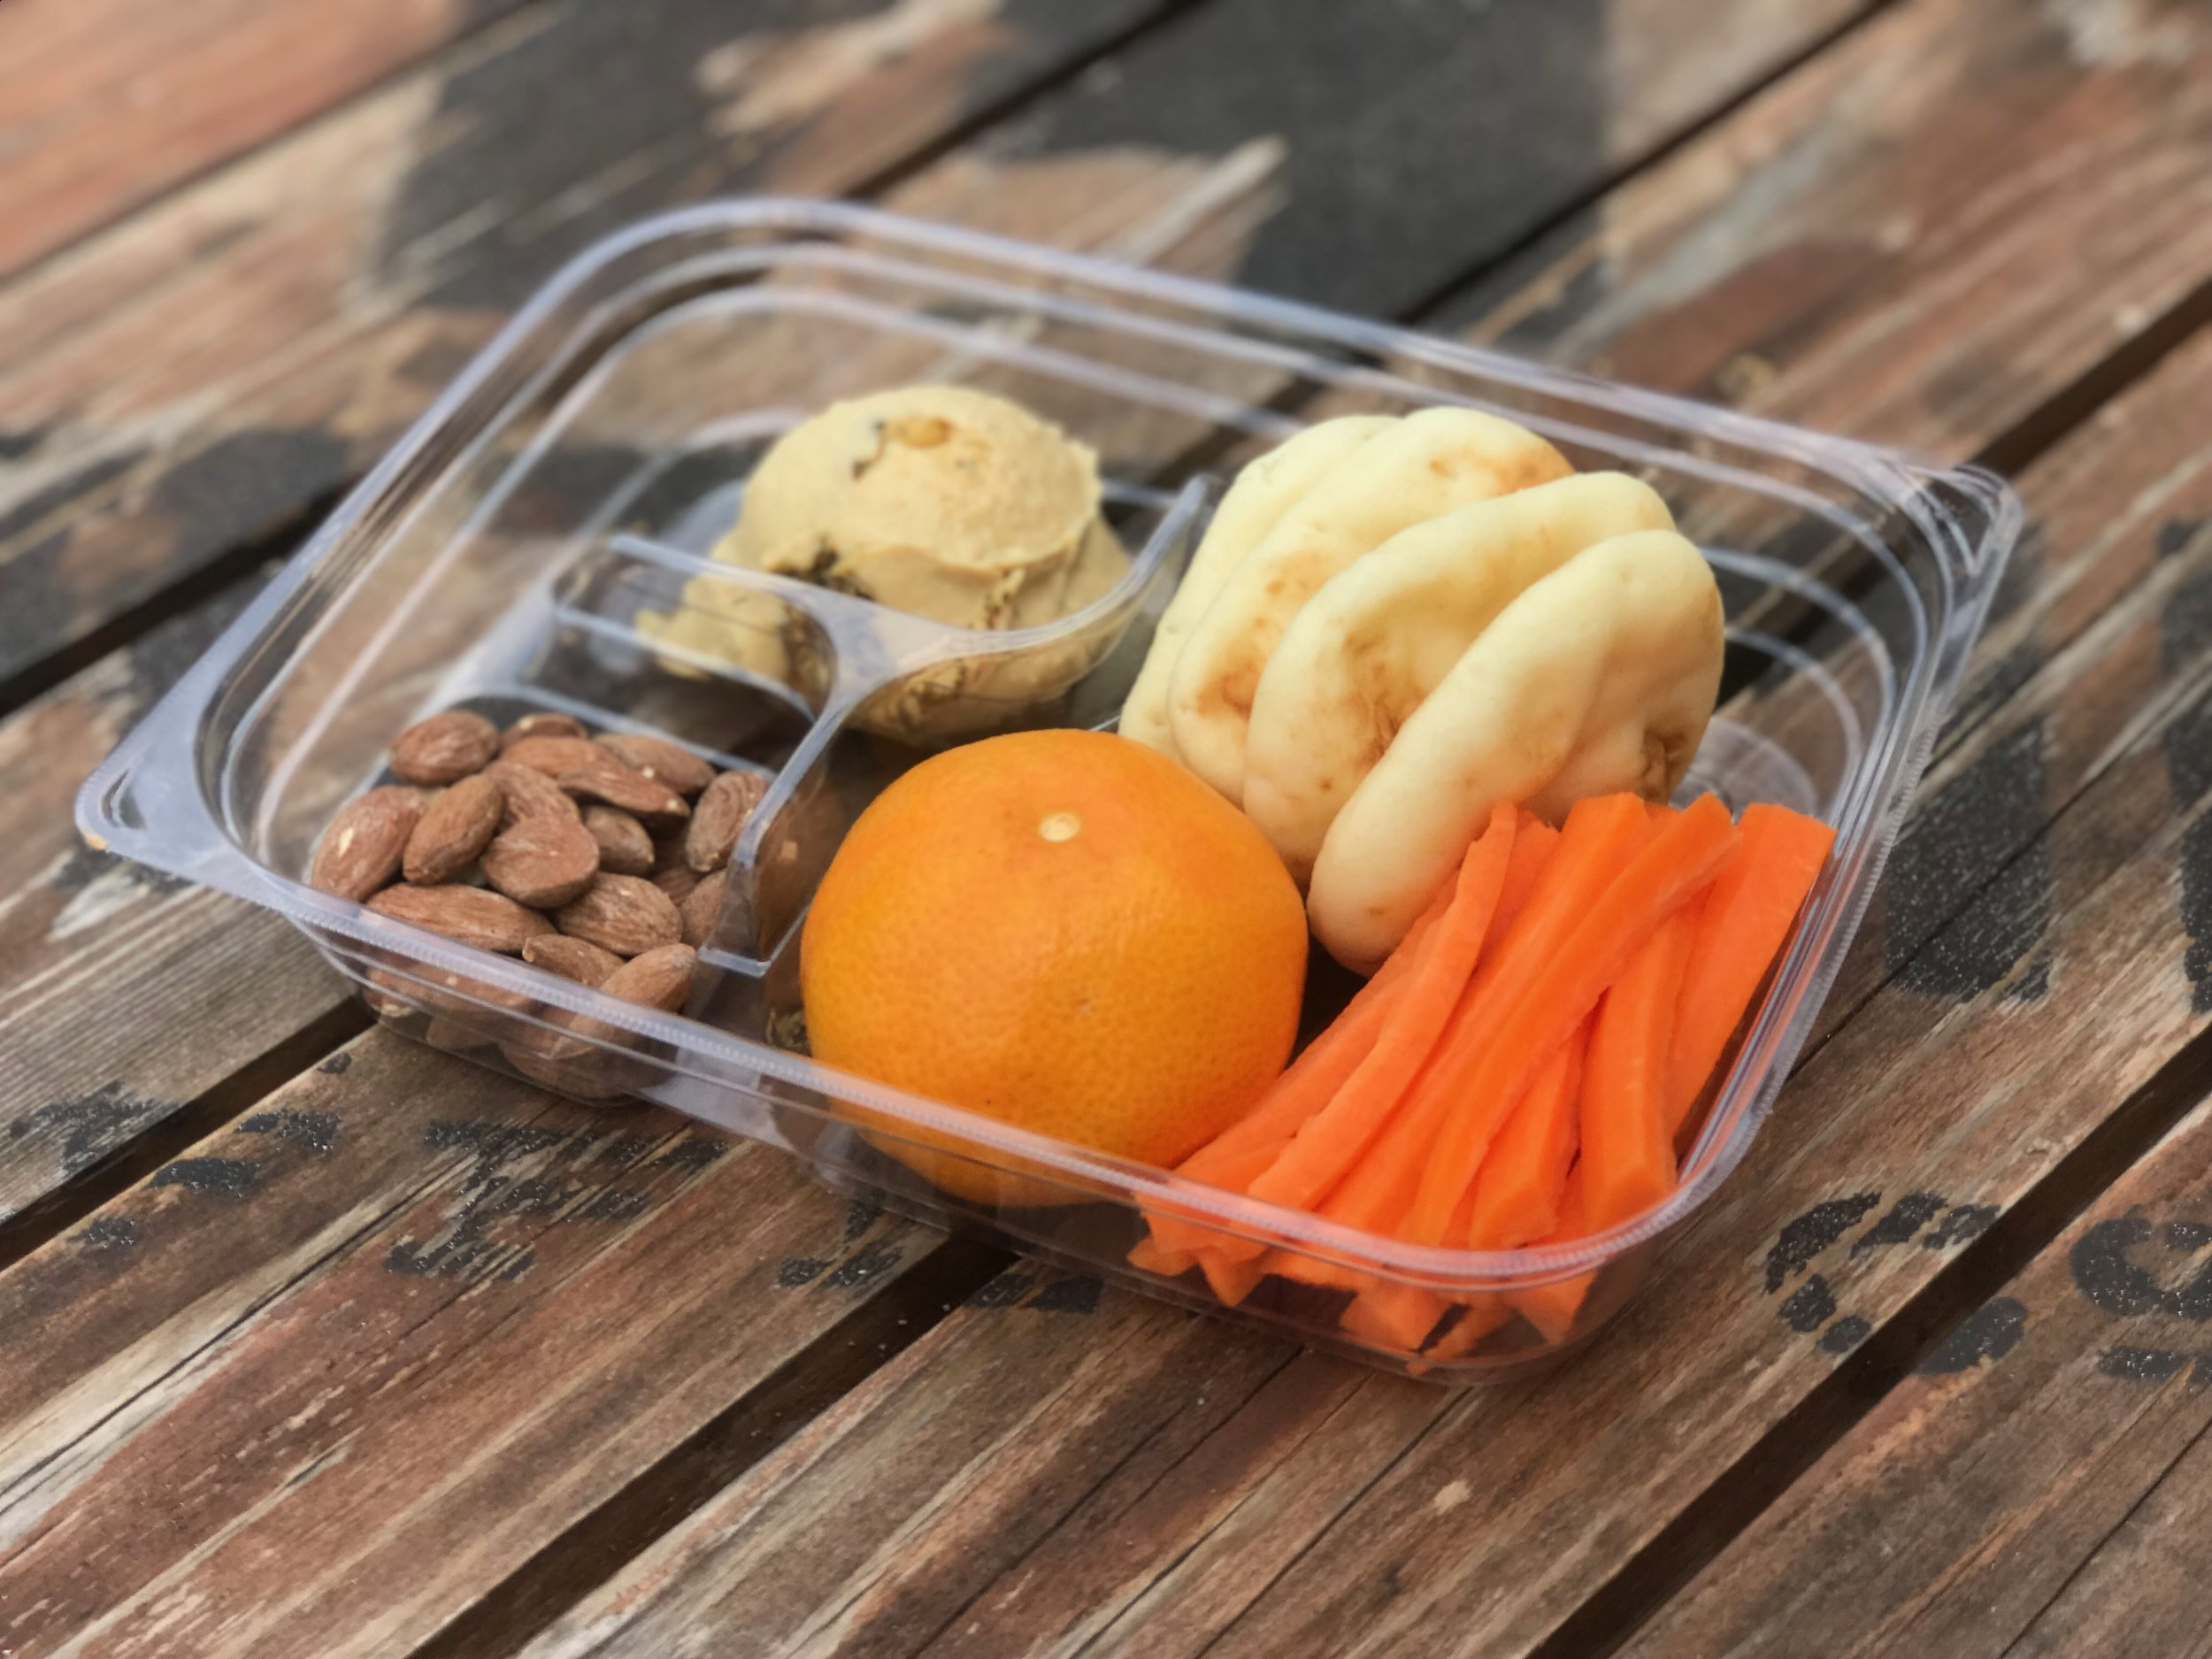 Veggie Bento Box - Vegan Friendly!